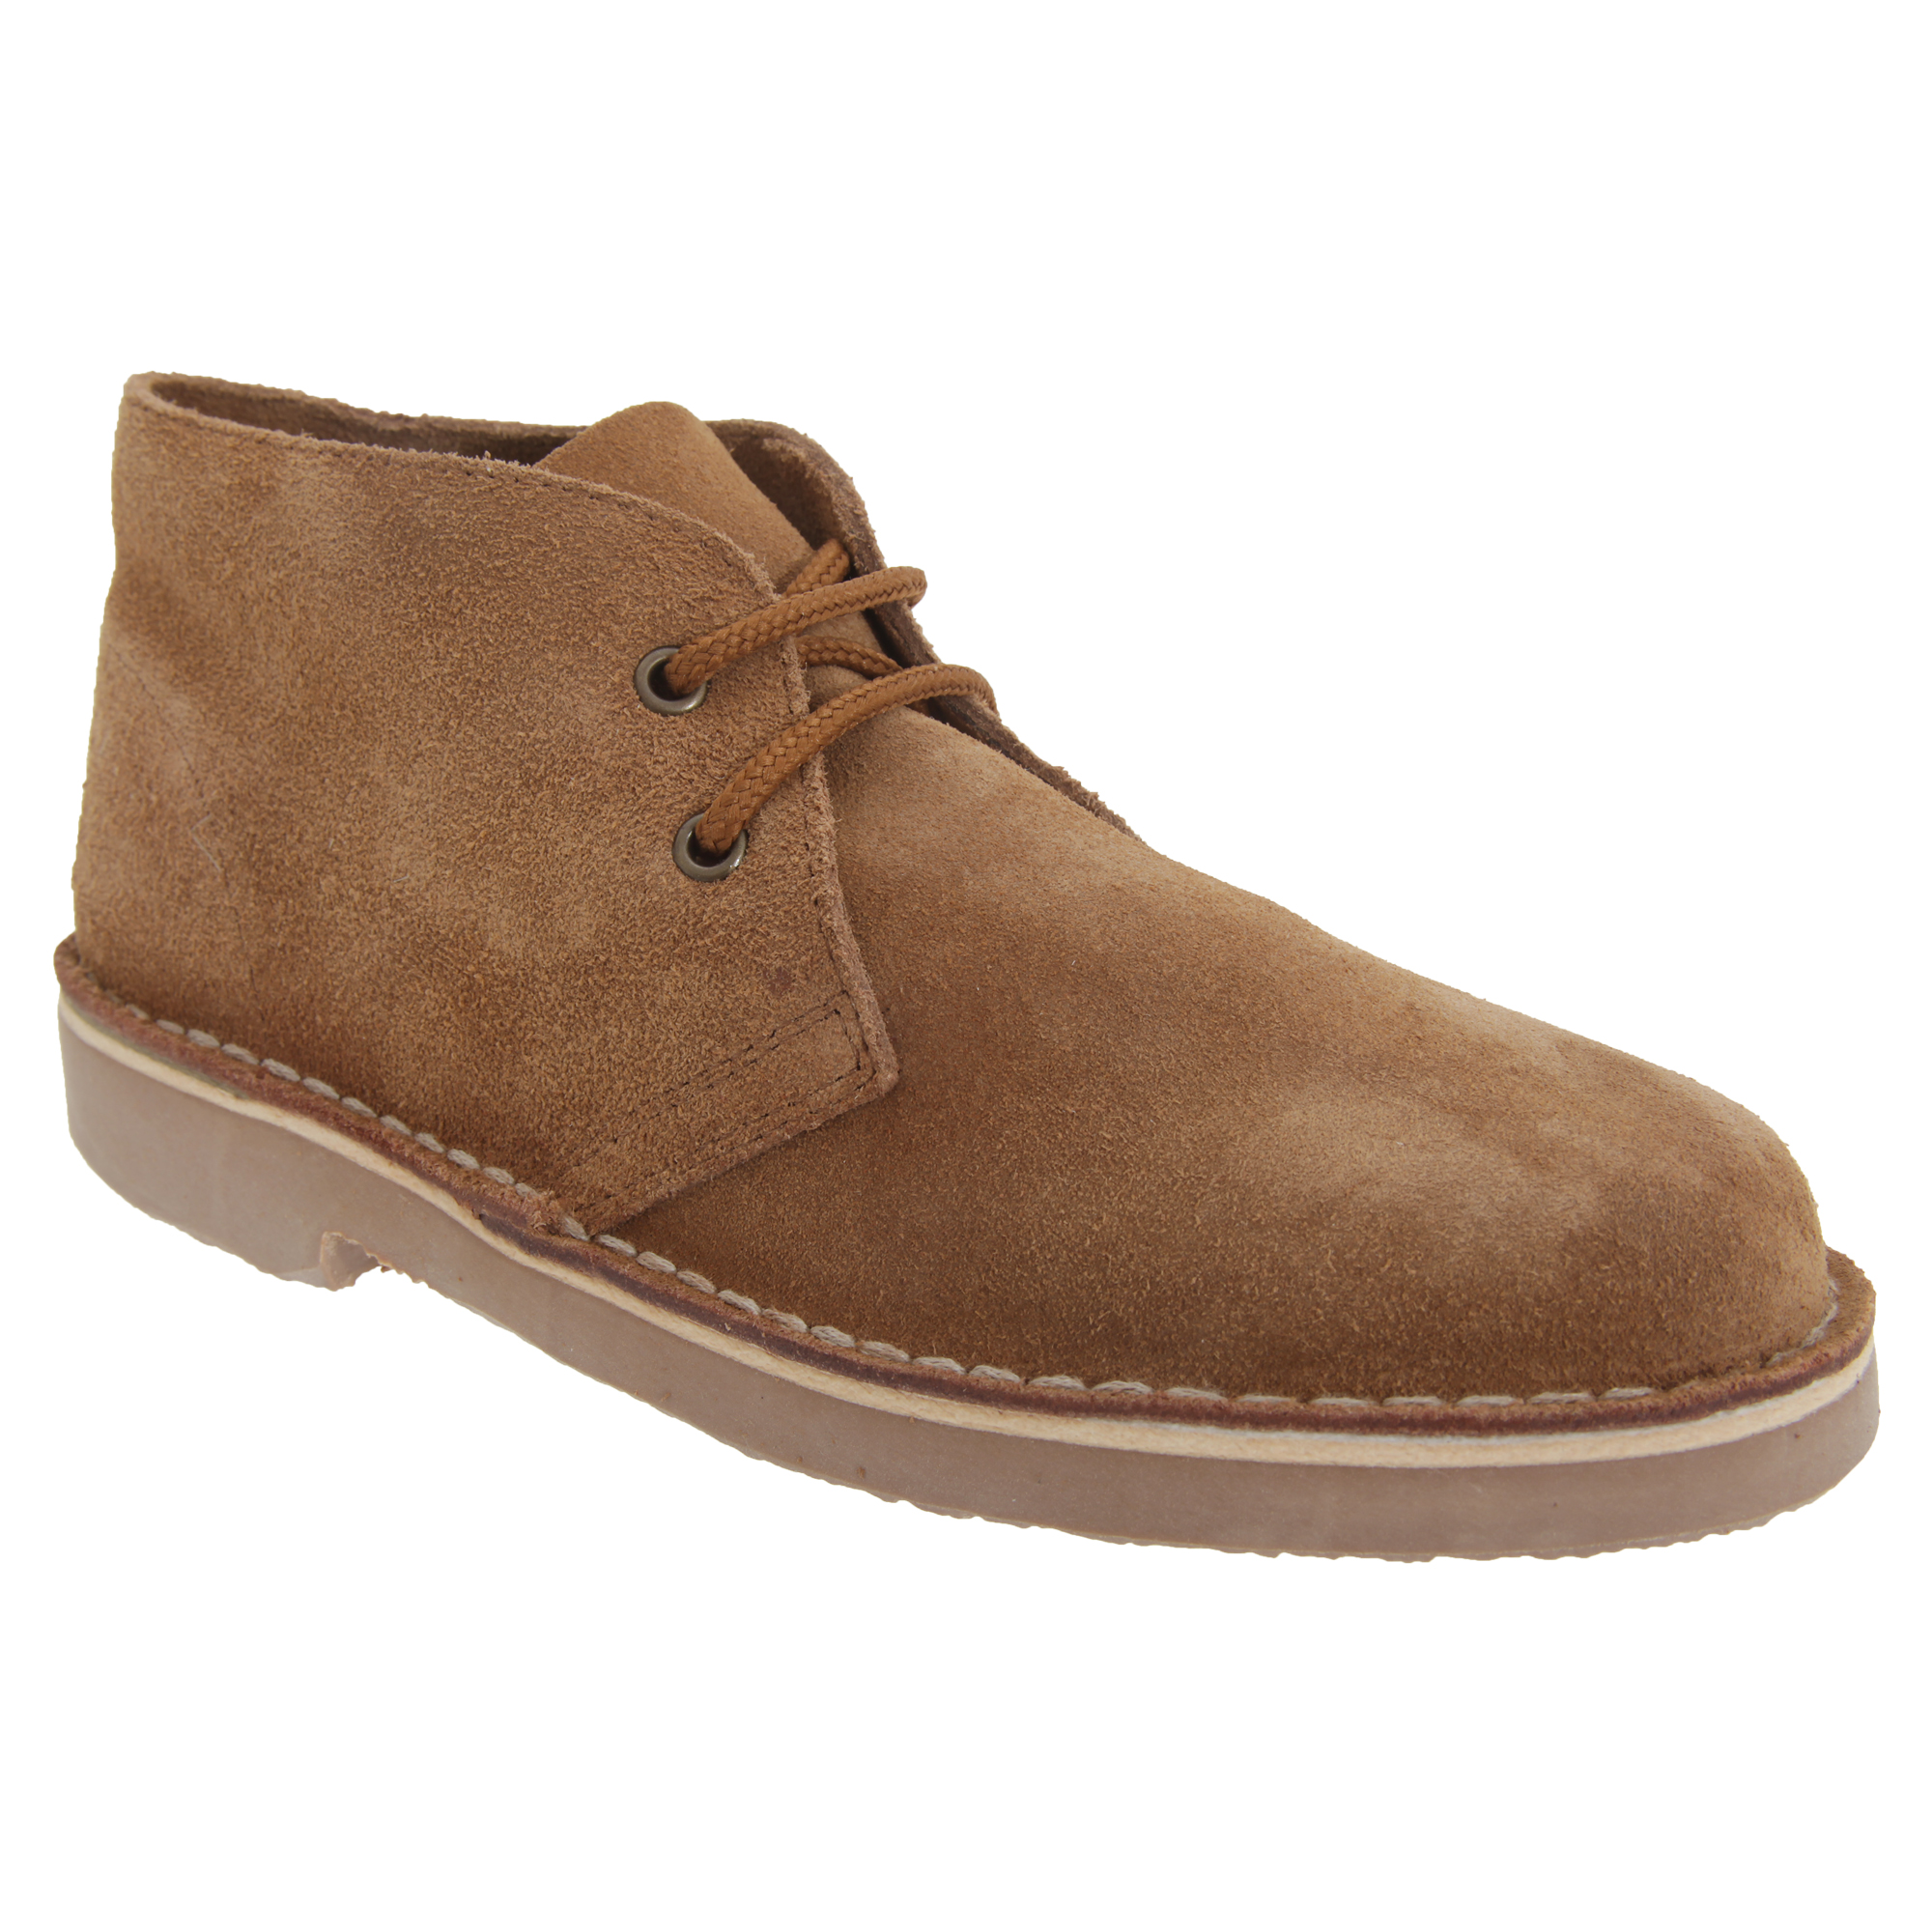 Roamers Adults Unisex Real Suede Unlined Desert Boots (8 UK) (Sand)